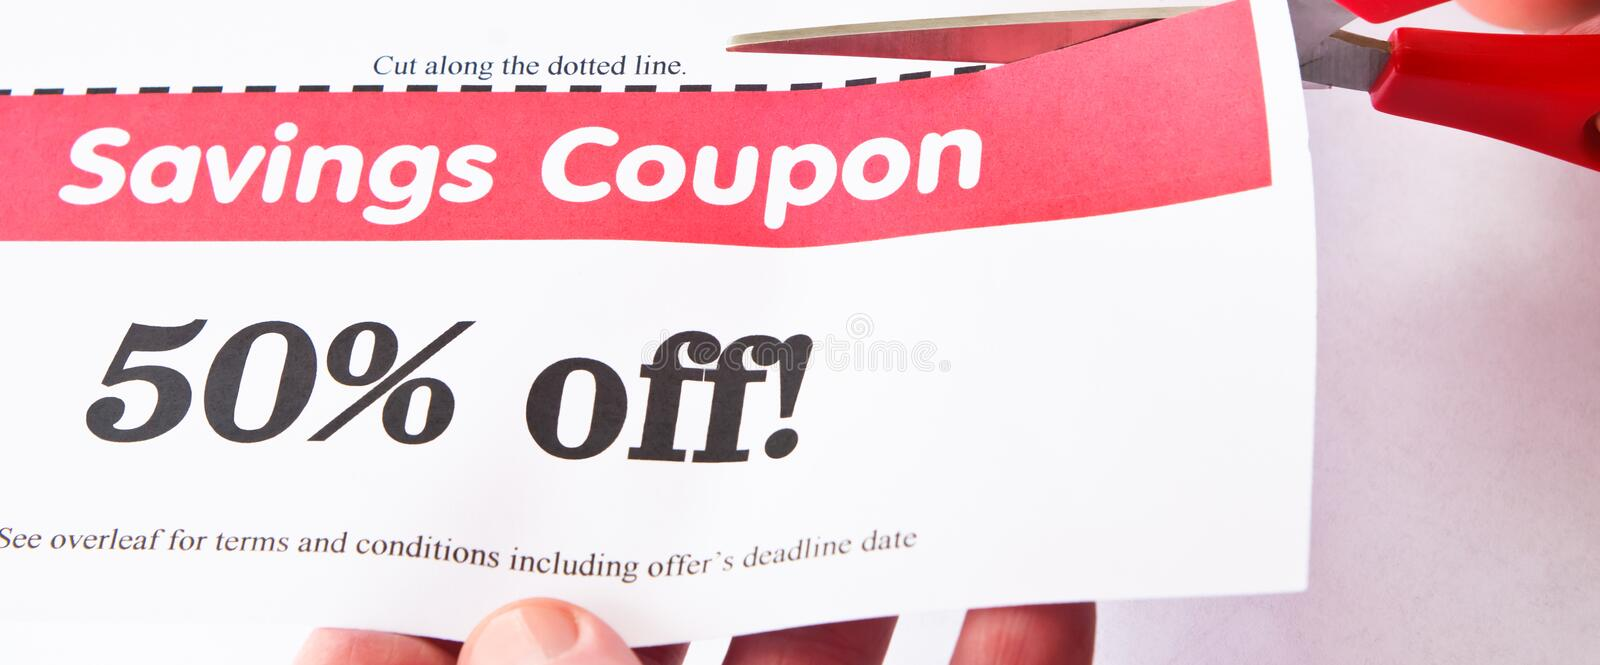 Savings Coupon. Scissors cutting dotted line of a 50% off savings coupon. Hands visible stock photo